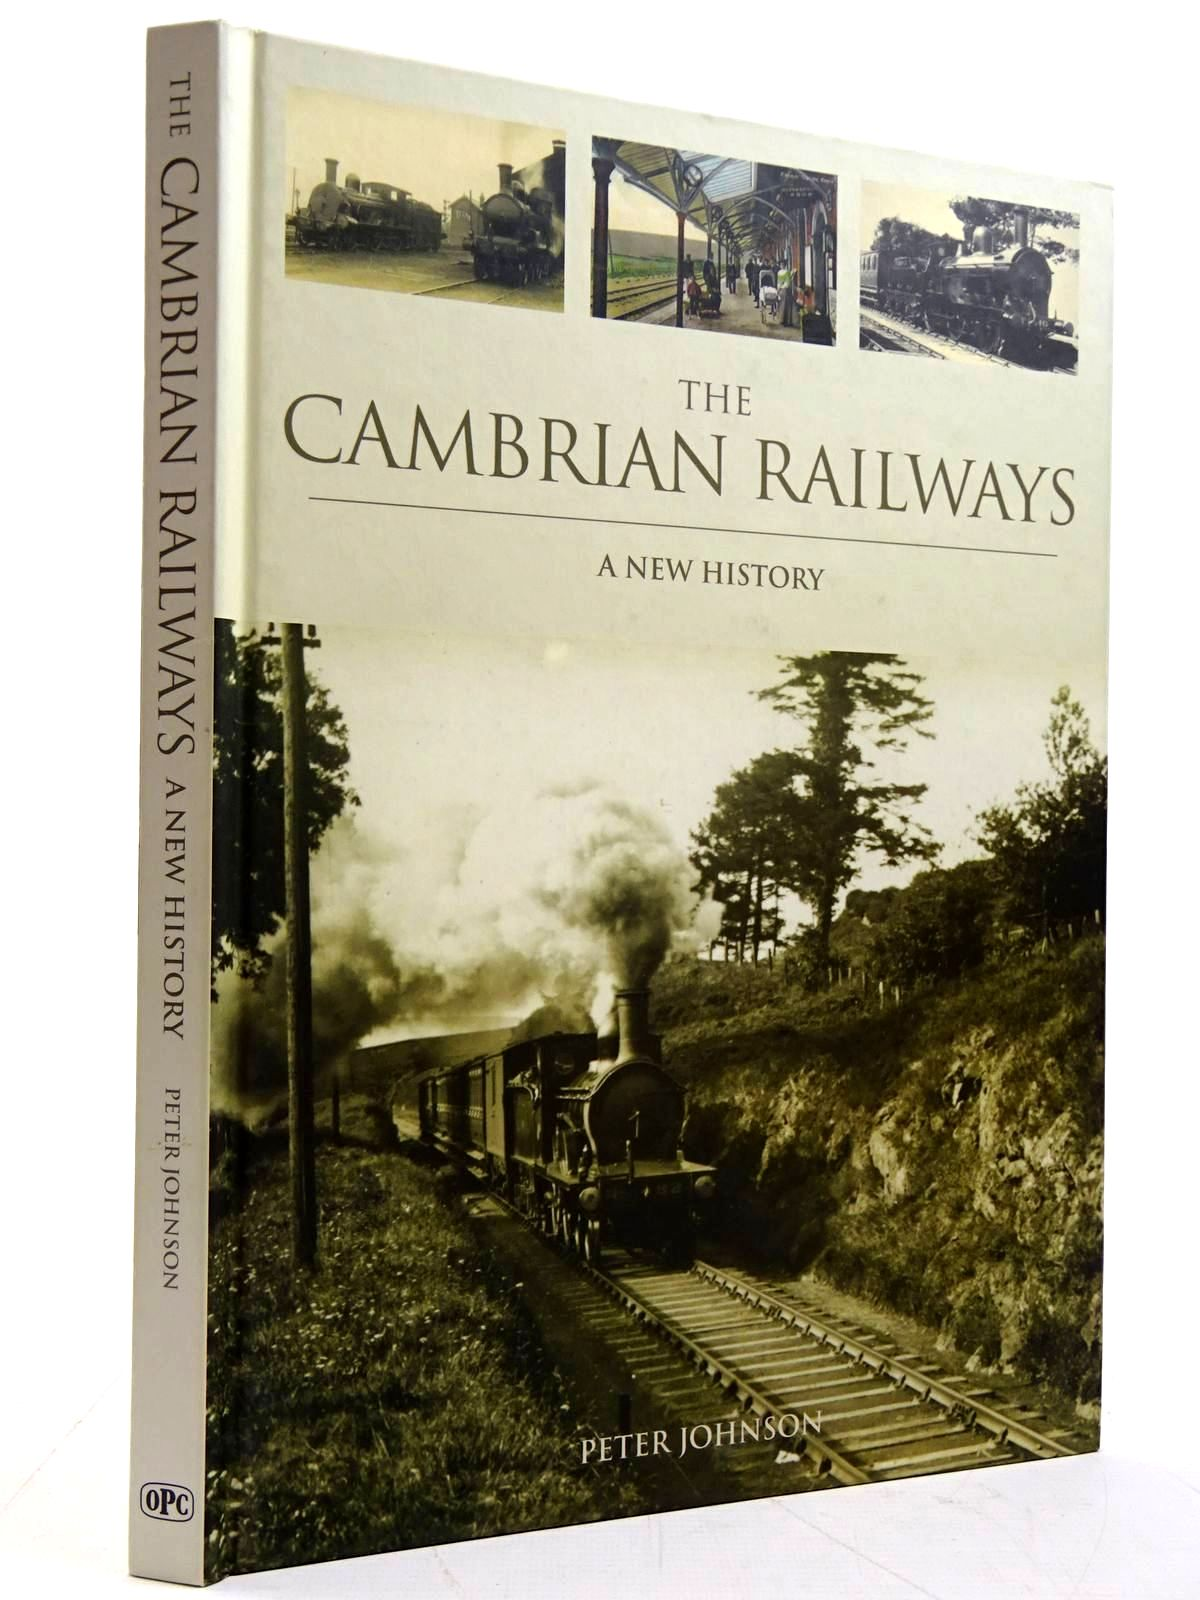 Photo of THE CAMBRIAN RAILWAYS A NEW HISTORY written by Johnson, Peter published by Oxford Publishing Co (STOCK CODE: 2131512)  for sale by Stella & Rose's Books